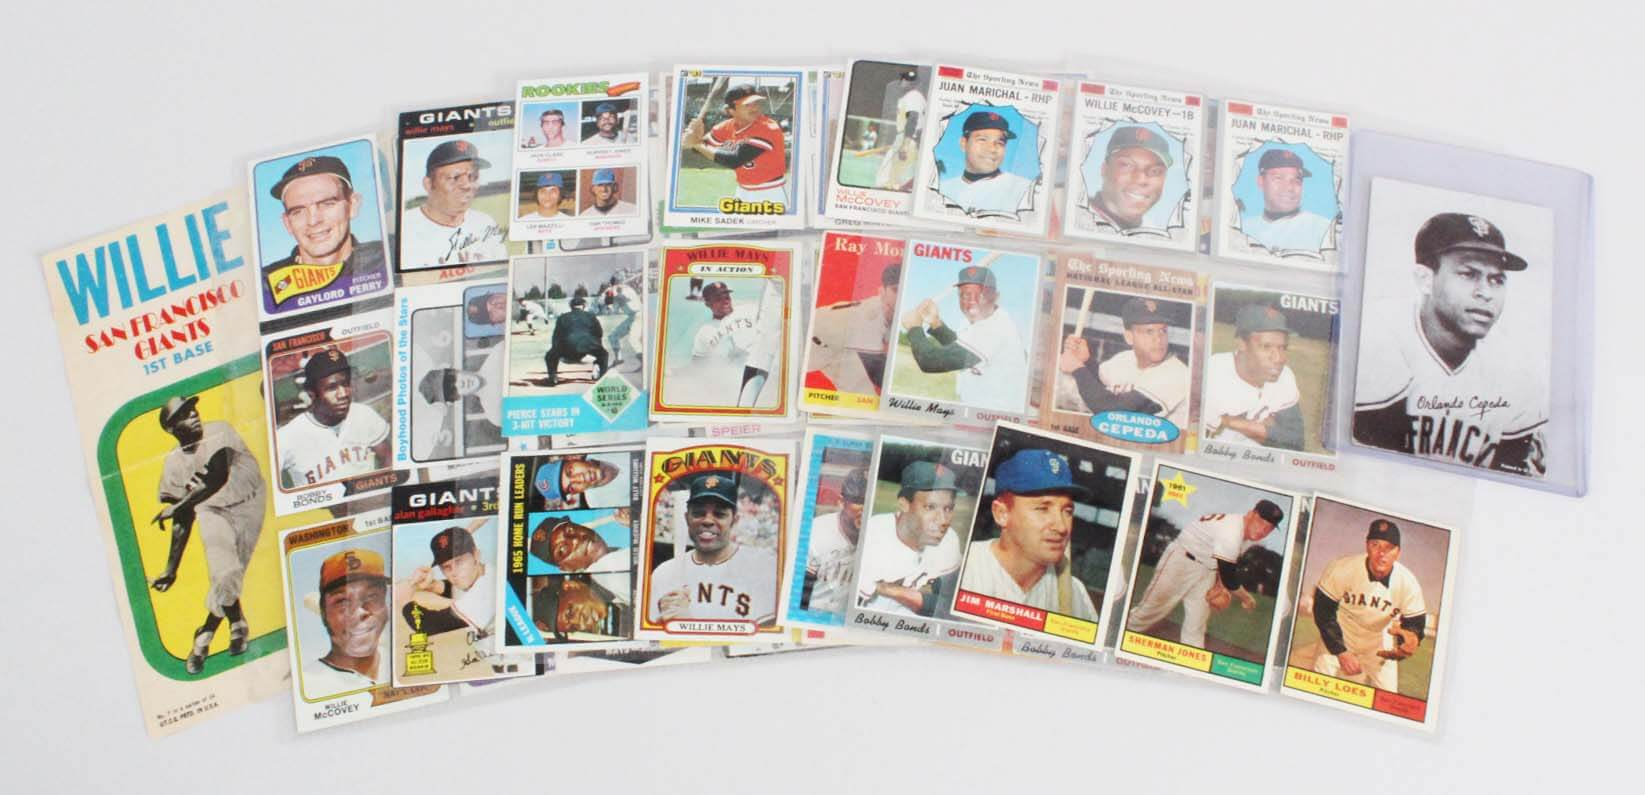 San Francisco Giants Vintage Baseball Card Lot (57) - Willie Mays, Willie McCovey, etc.